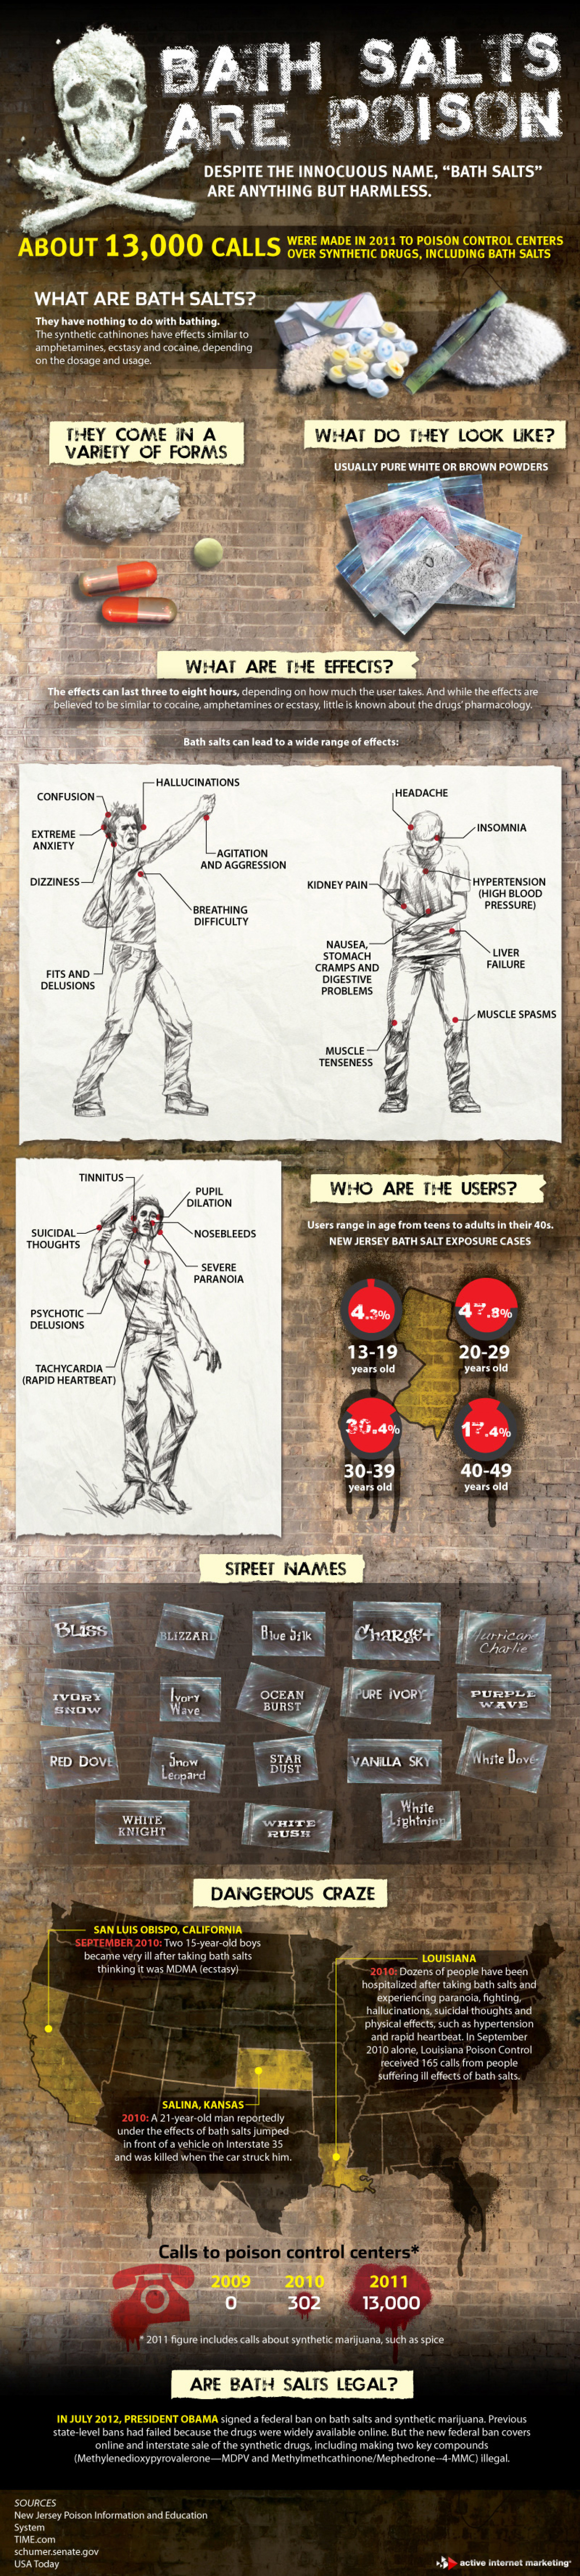 Bath Salts Are Poison Infographic